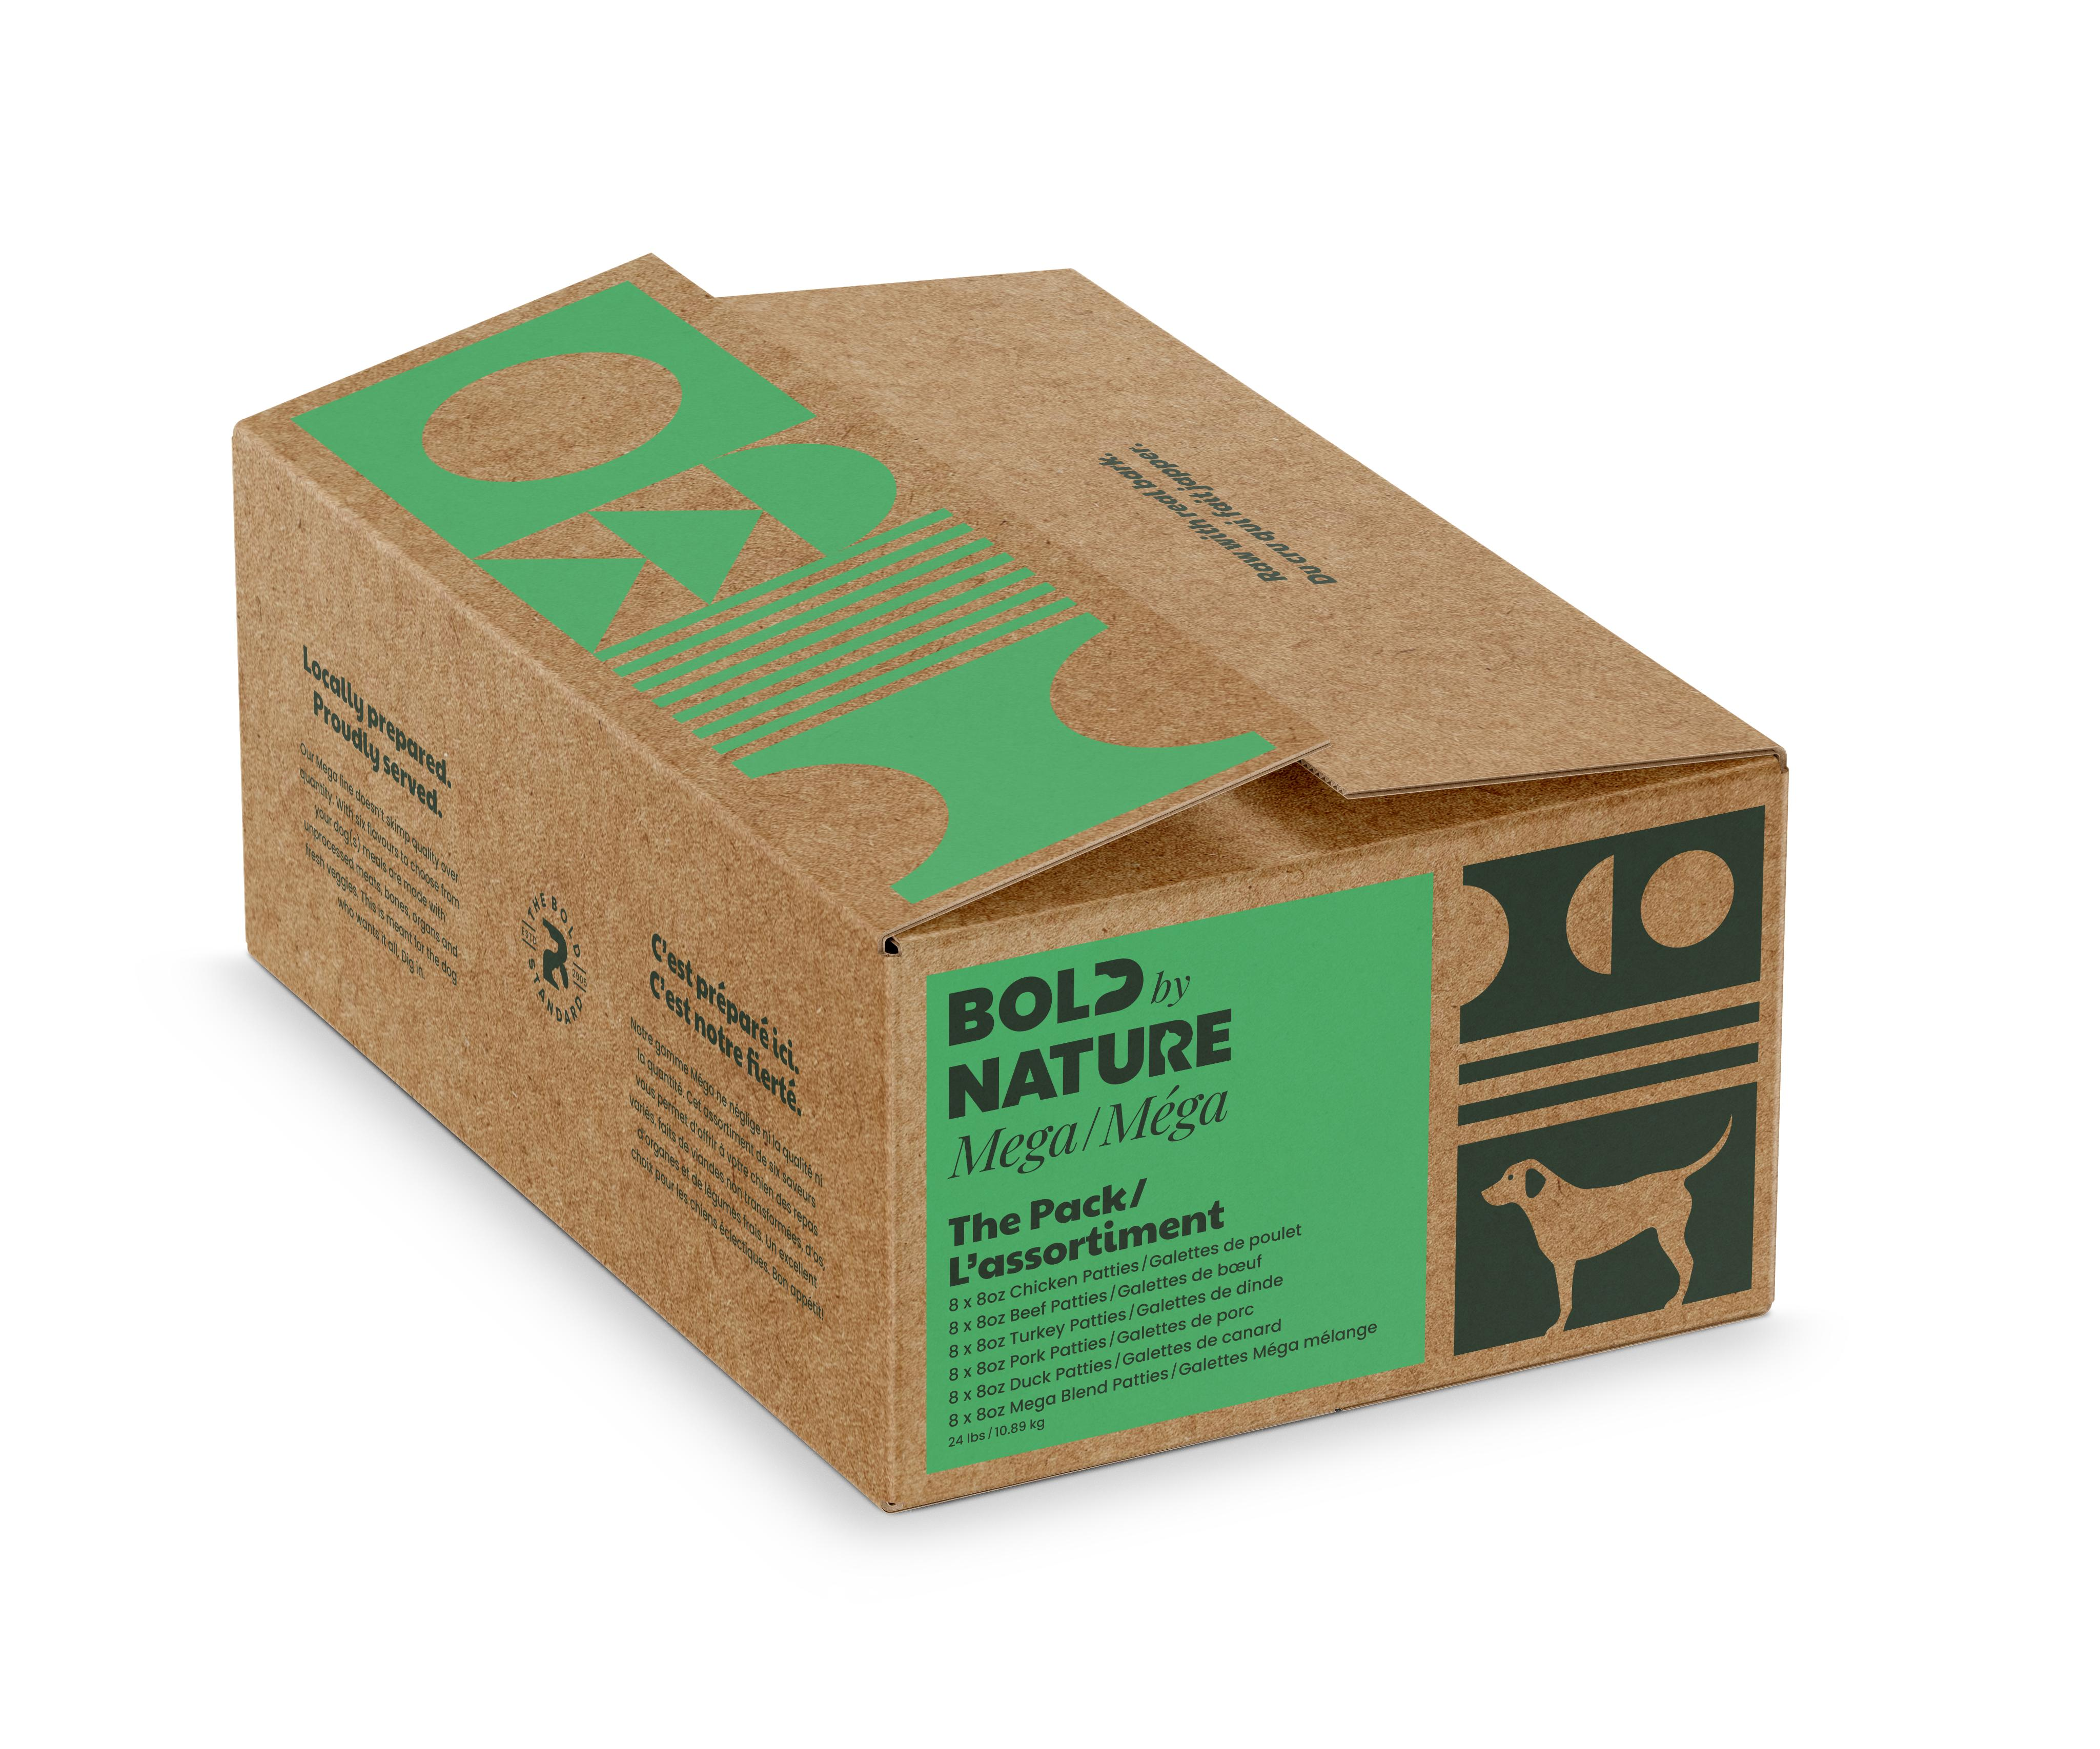 Bold by Nature Dog Mega Variety Pack Chicken Free Patties Dog Food Image